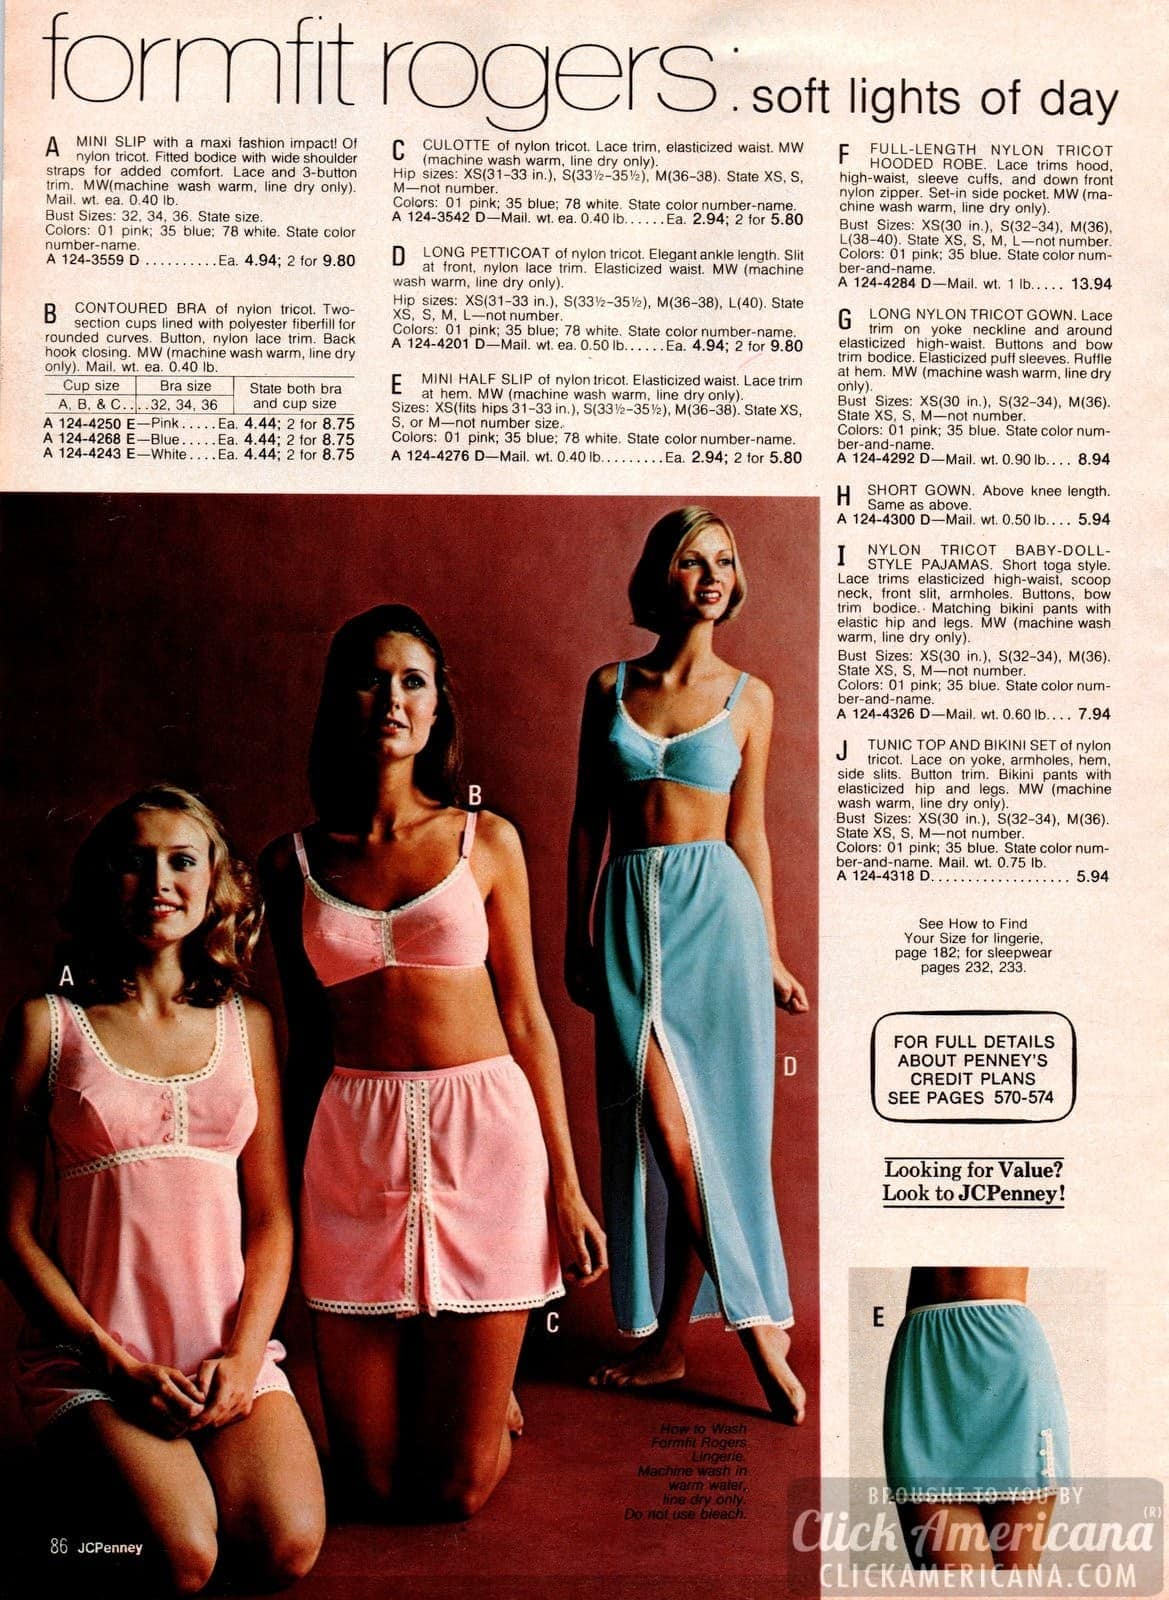 Vintage lingerie from the 70s (1)